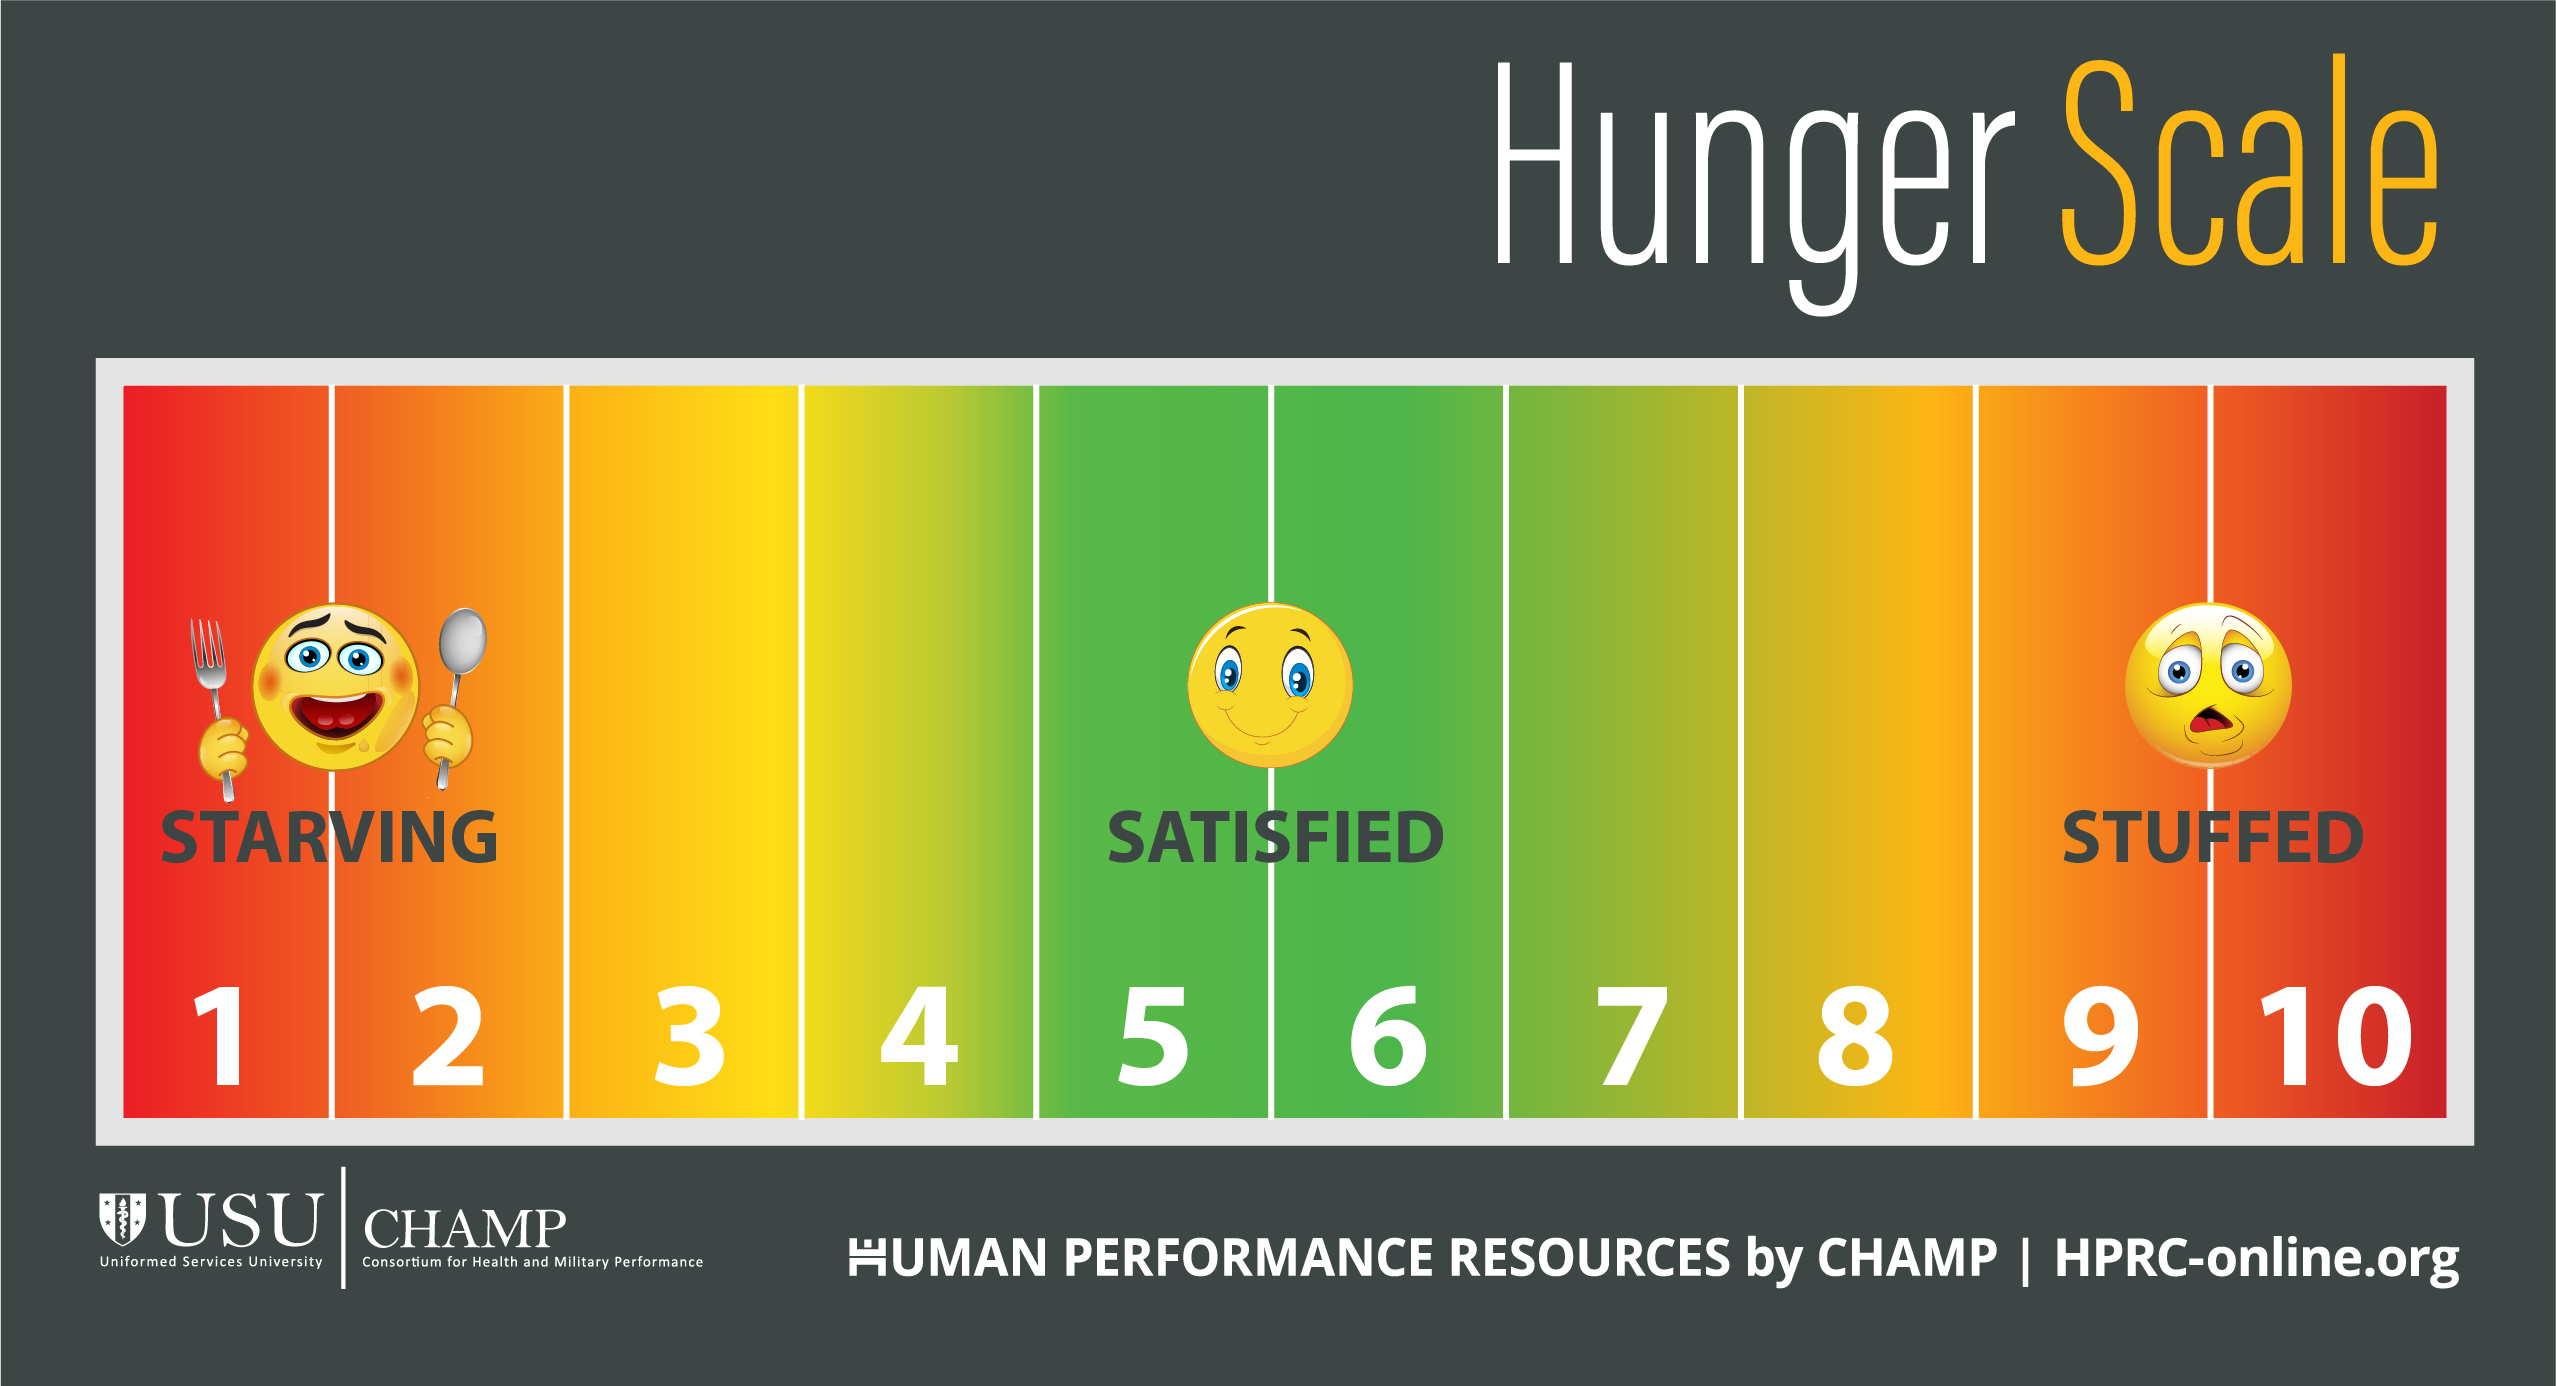 HPRC's Hunger Scale tracks hunger and fullness on a scale from 1 to 10. A rating of 1 or 2 means you feel like you're starving. A rating of 5 or 6 means you feel satisfied. A rating of 9 or 10 means you feel stuffed.